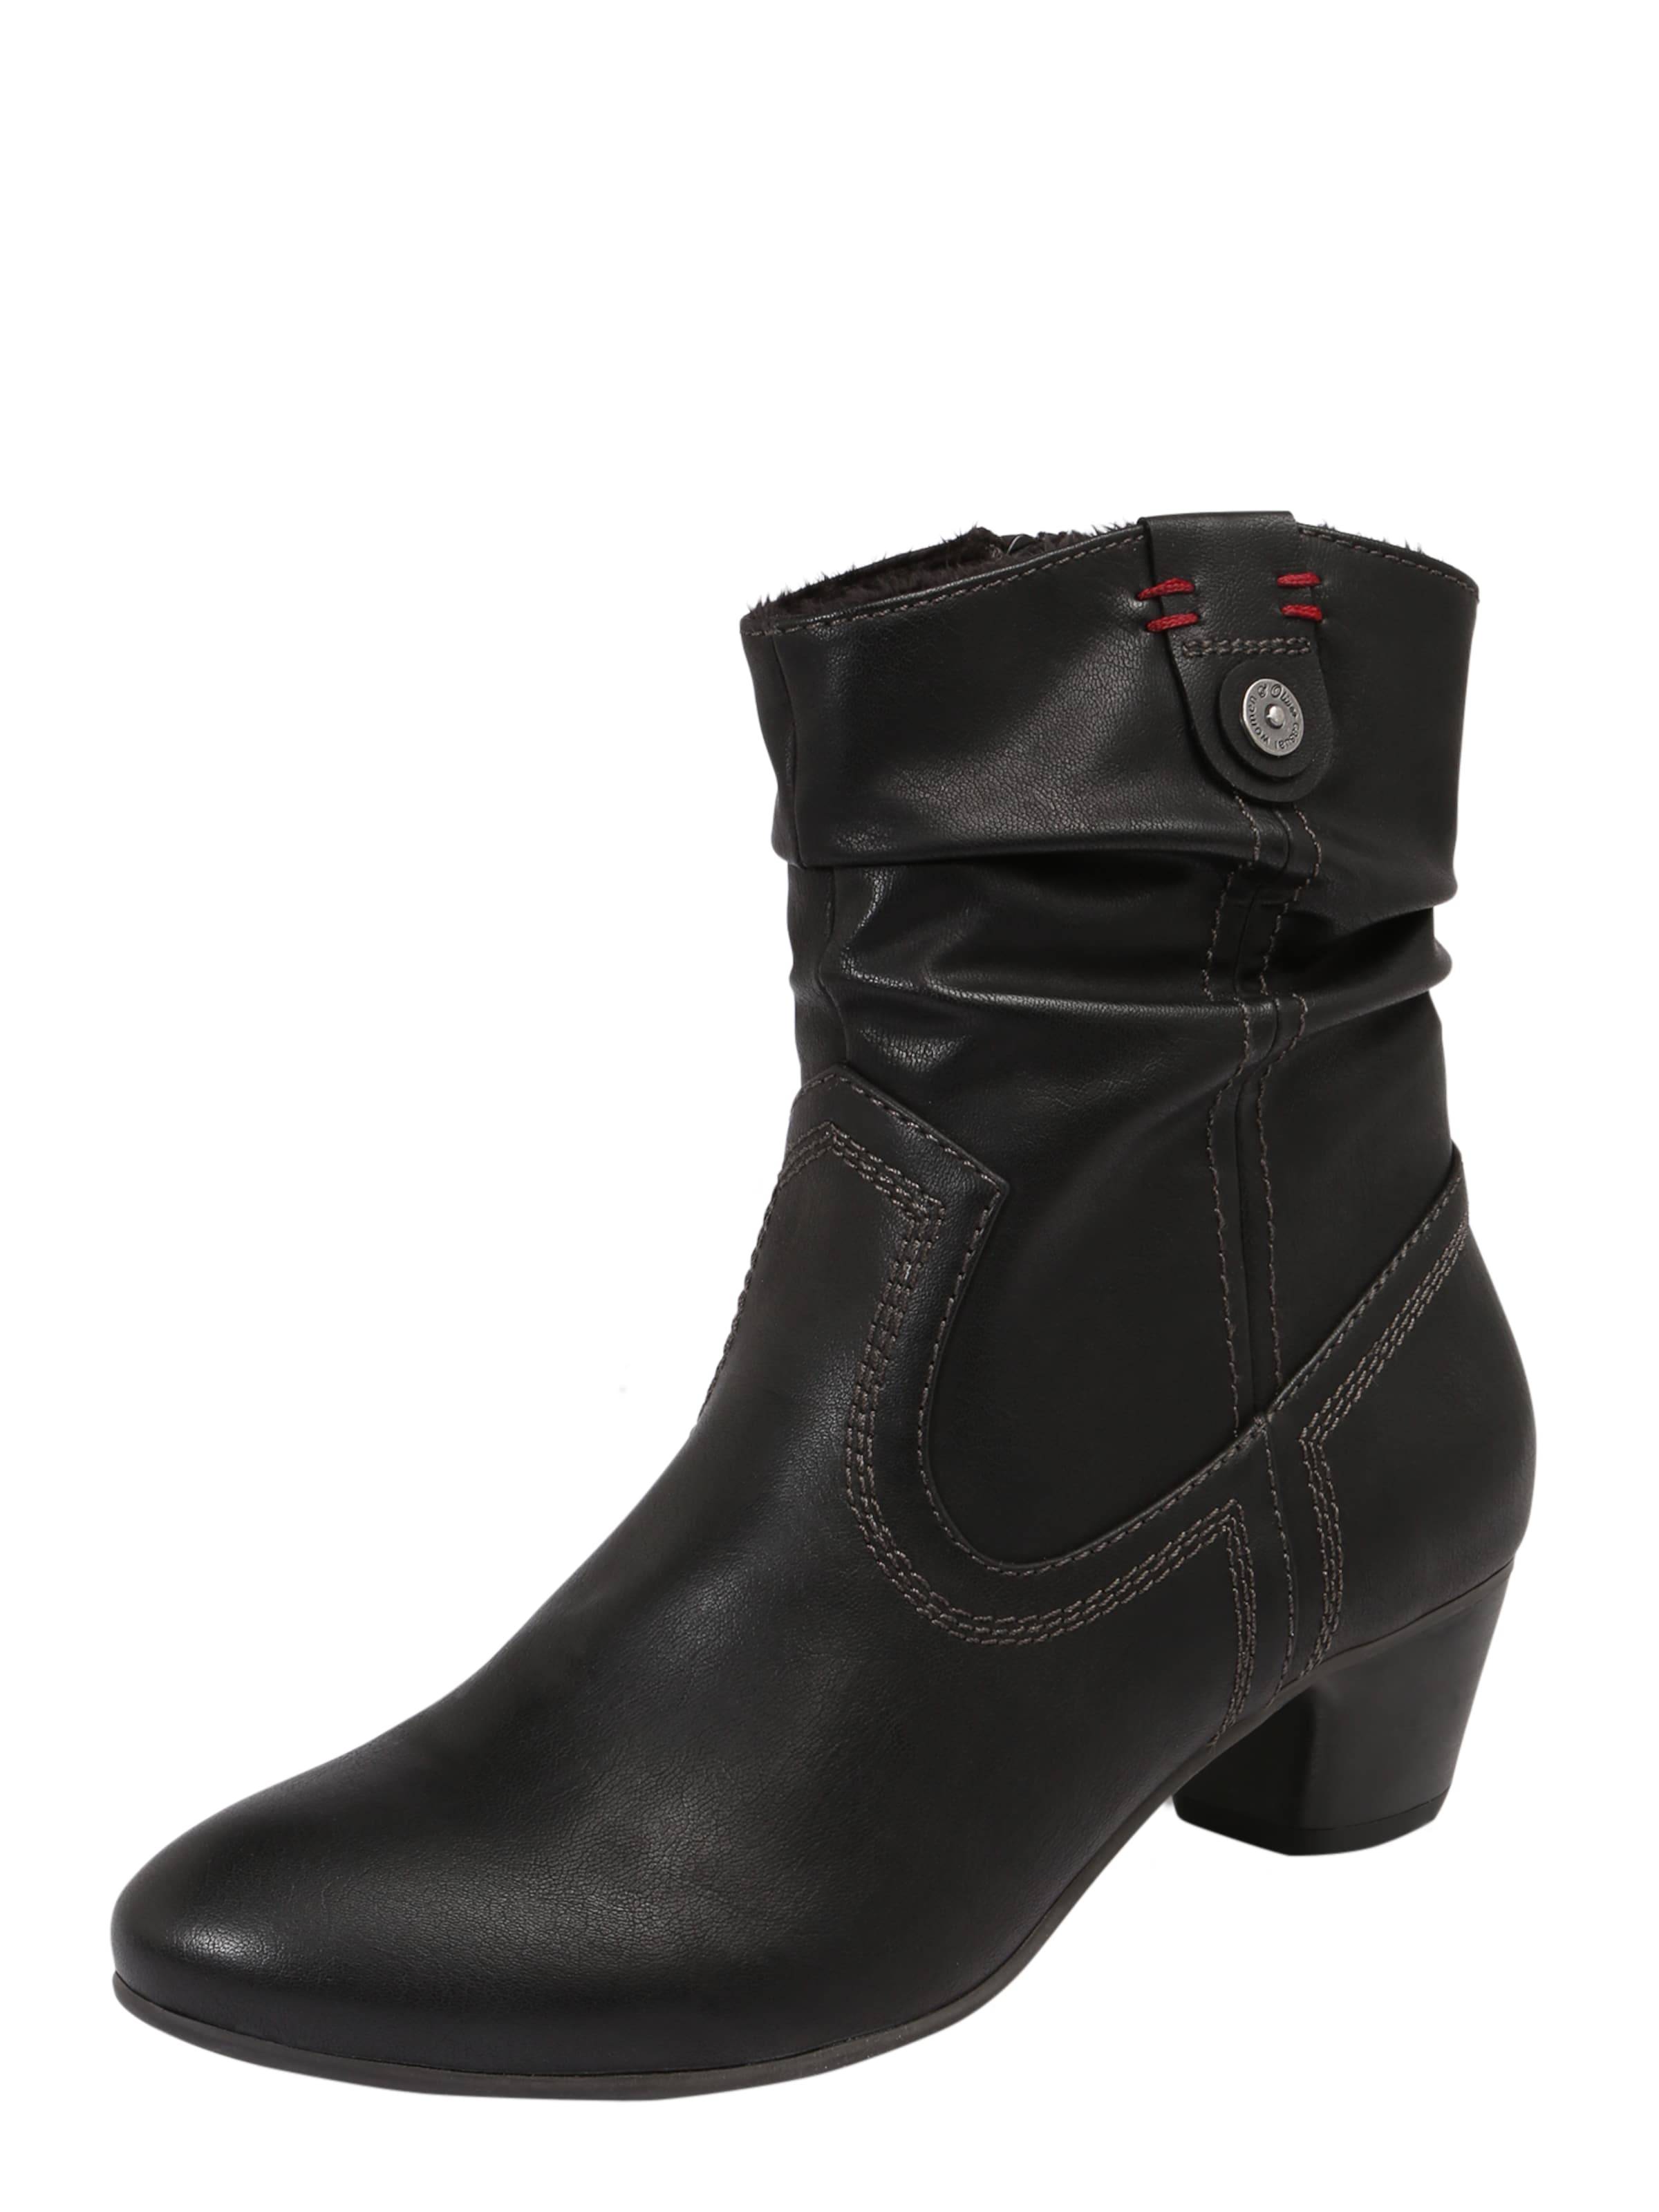 s.Oliver RED LABEL | Stiefelette 'Cowboy' Schuhe Gut getragene getragene getragene Schuhe b963ec